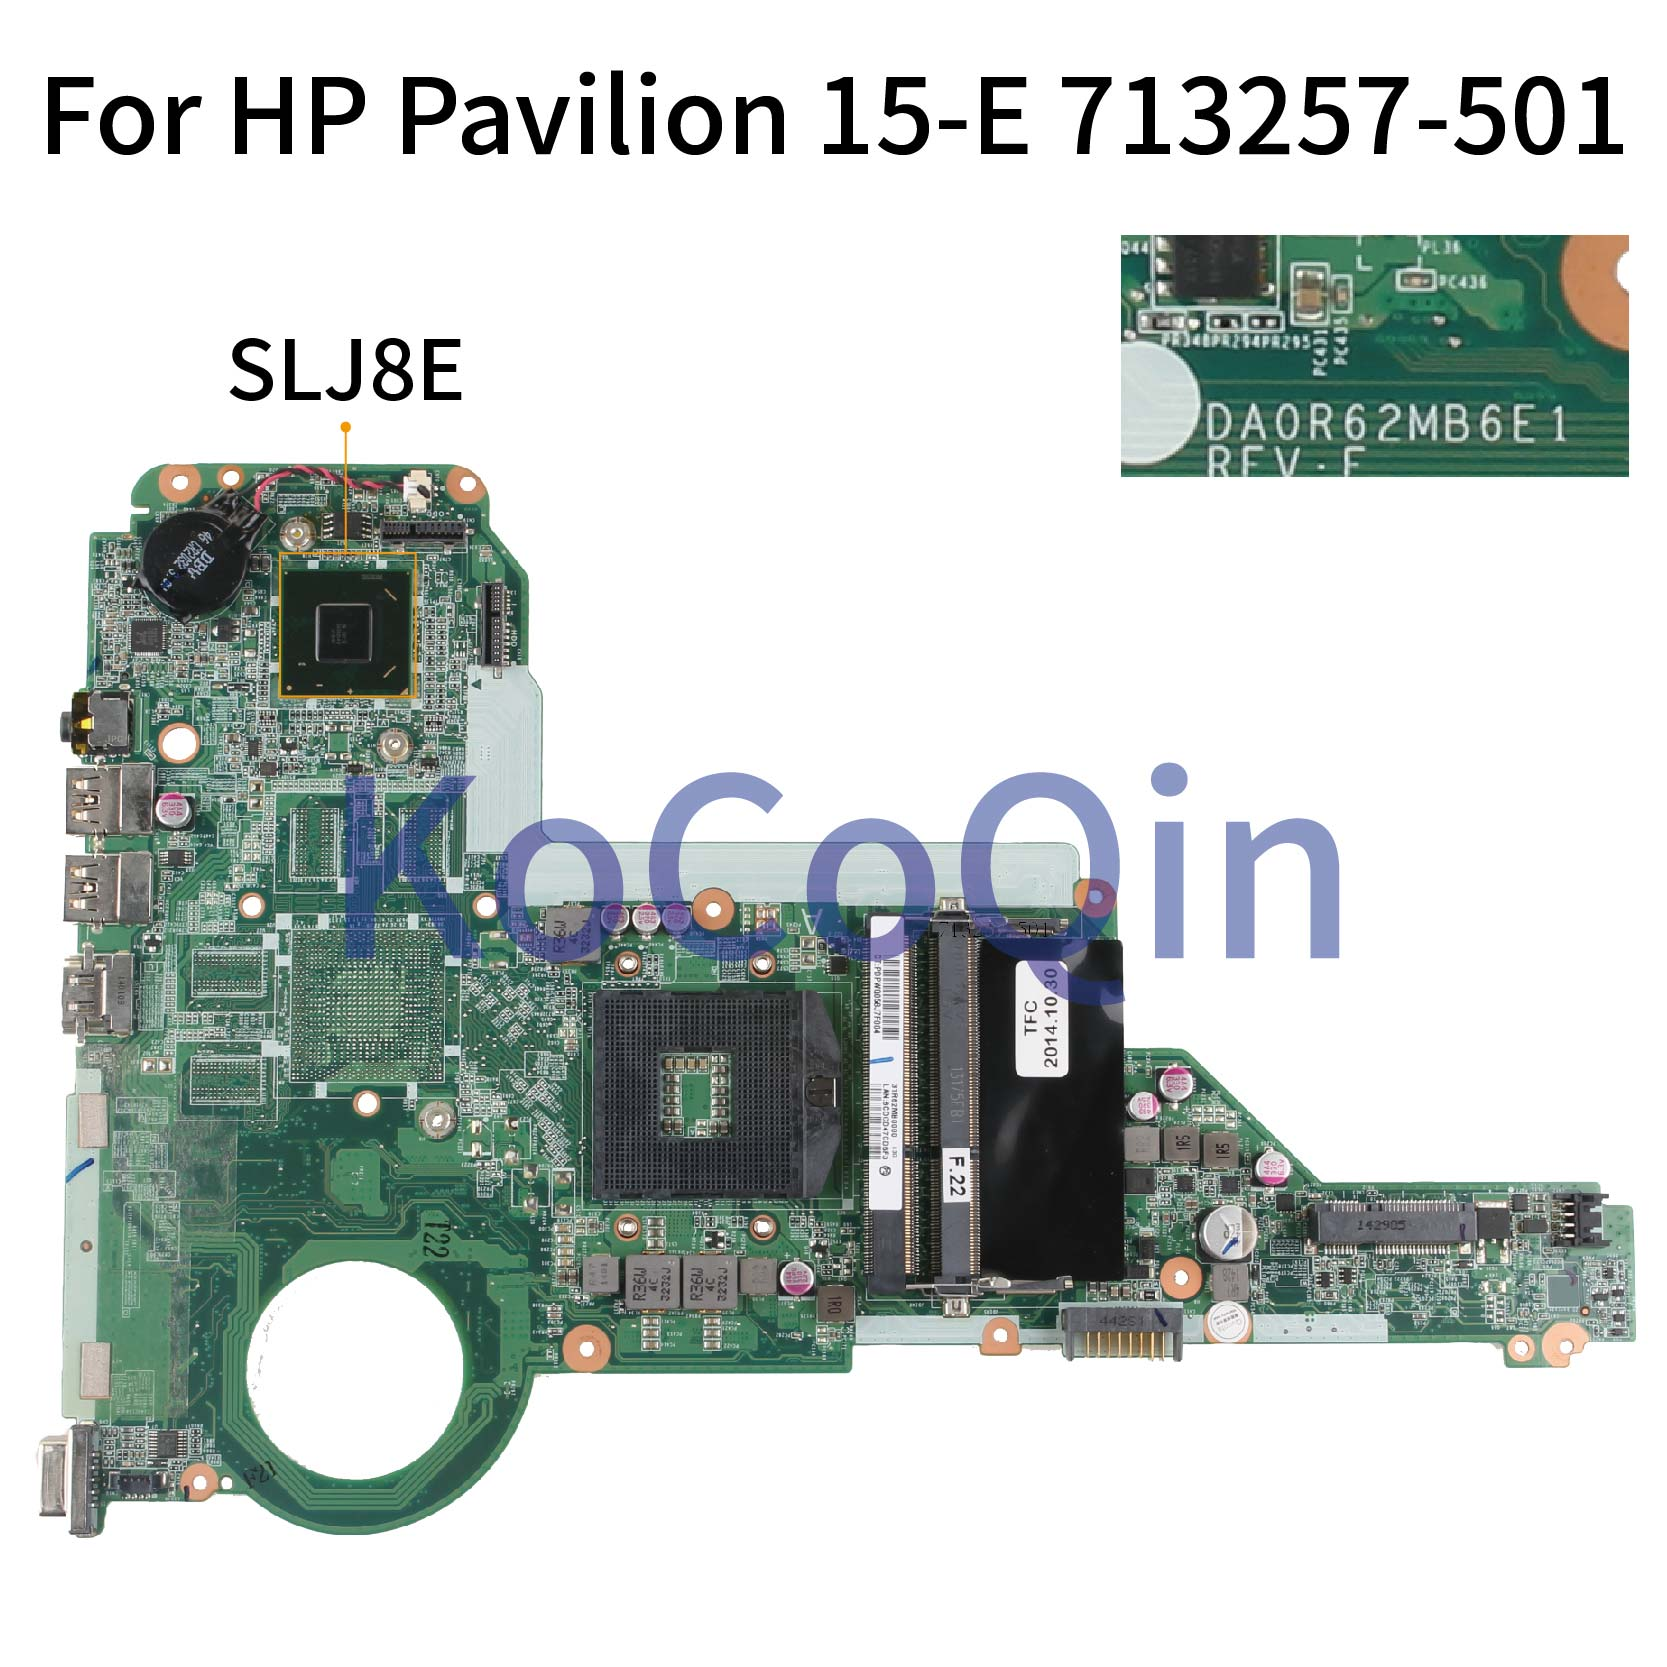 KoCoQin Laptop Motherboard For HP Pavilion 14-E 15-E 17-E HM76 Mainboard 713257-001 713257-501 DAOR62MB6E1 SLJ8E